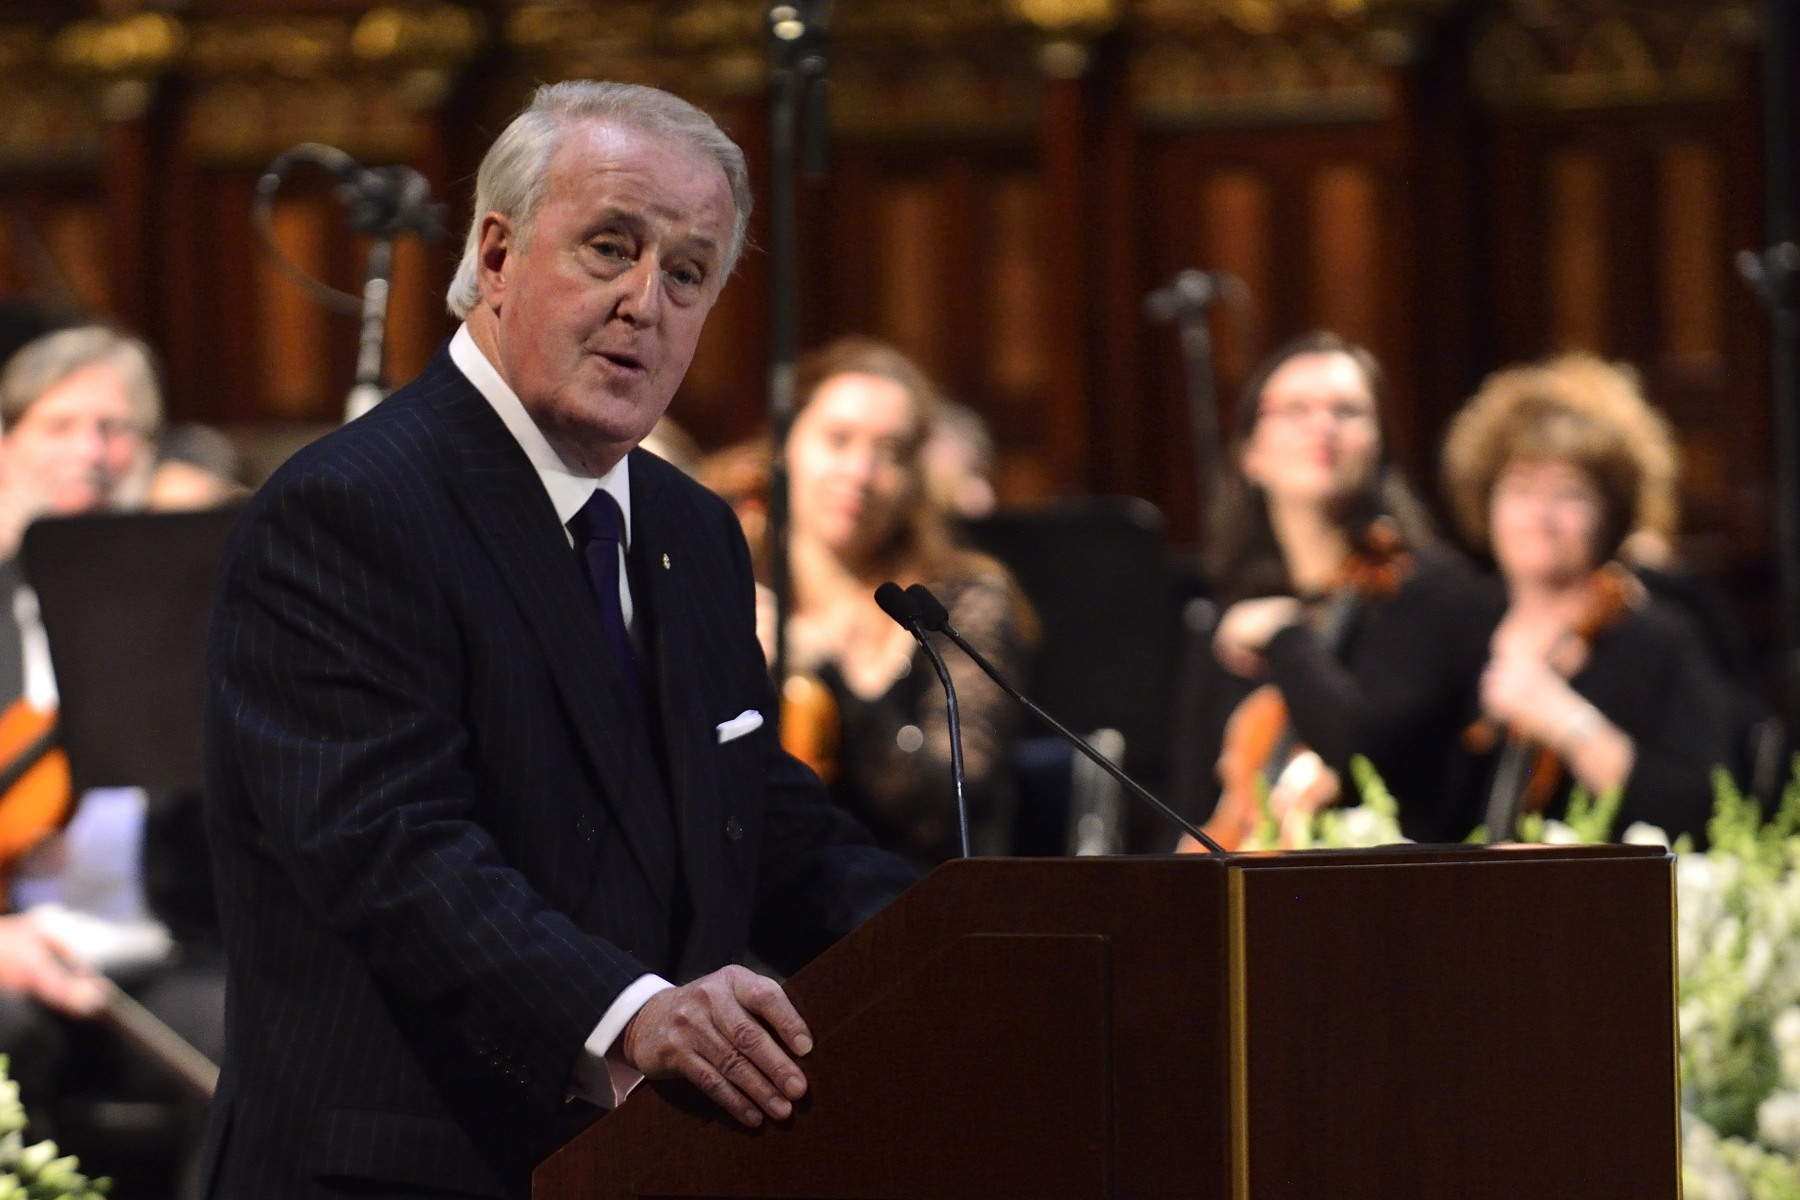 Former Prime Minister of Canada the Honourable Brian Mulroney (1984-1993) was the last one to speak about how Paul G. Desmarais was a remarkable Canadian.